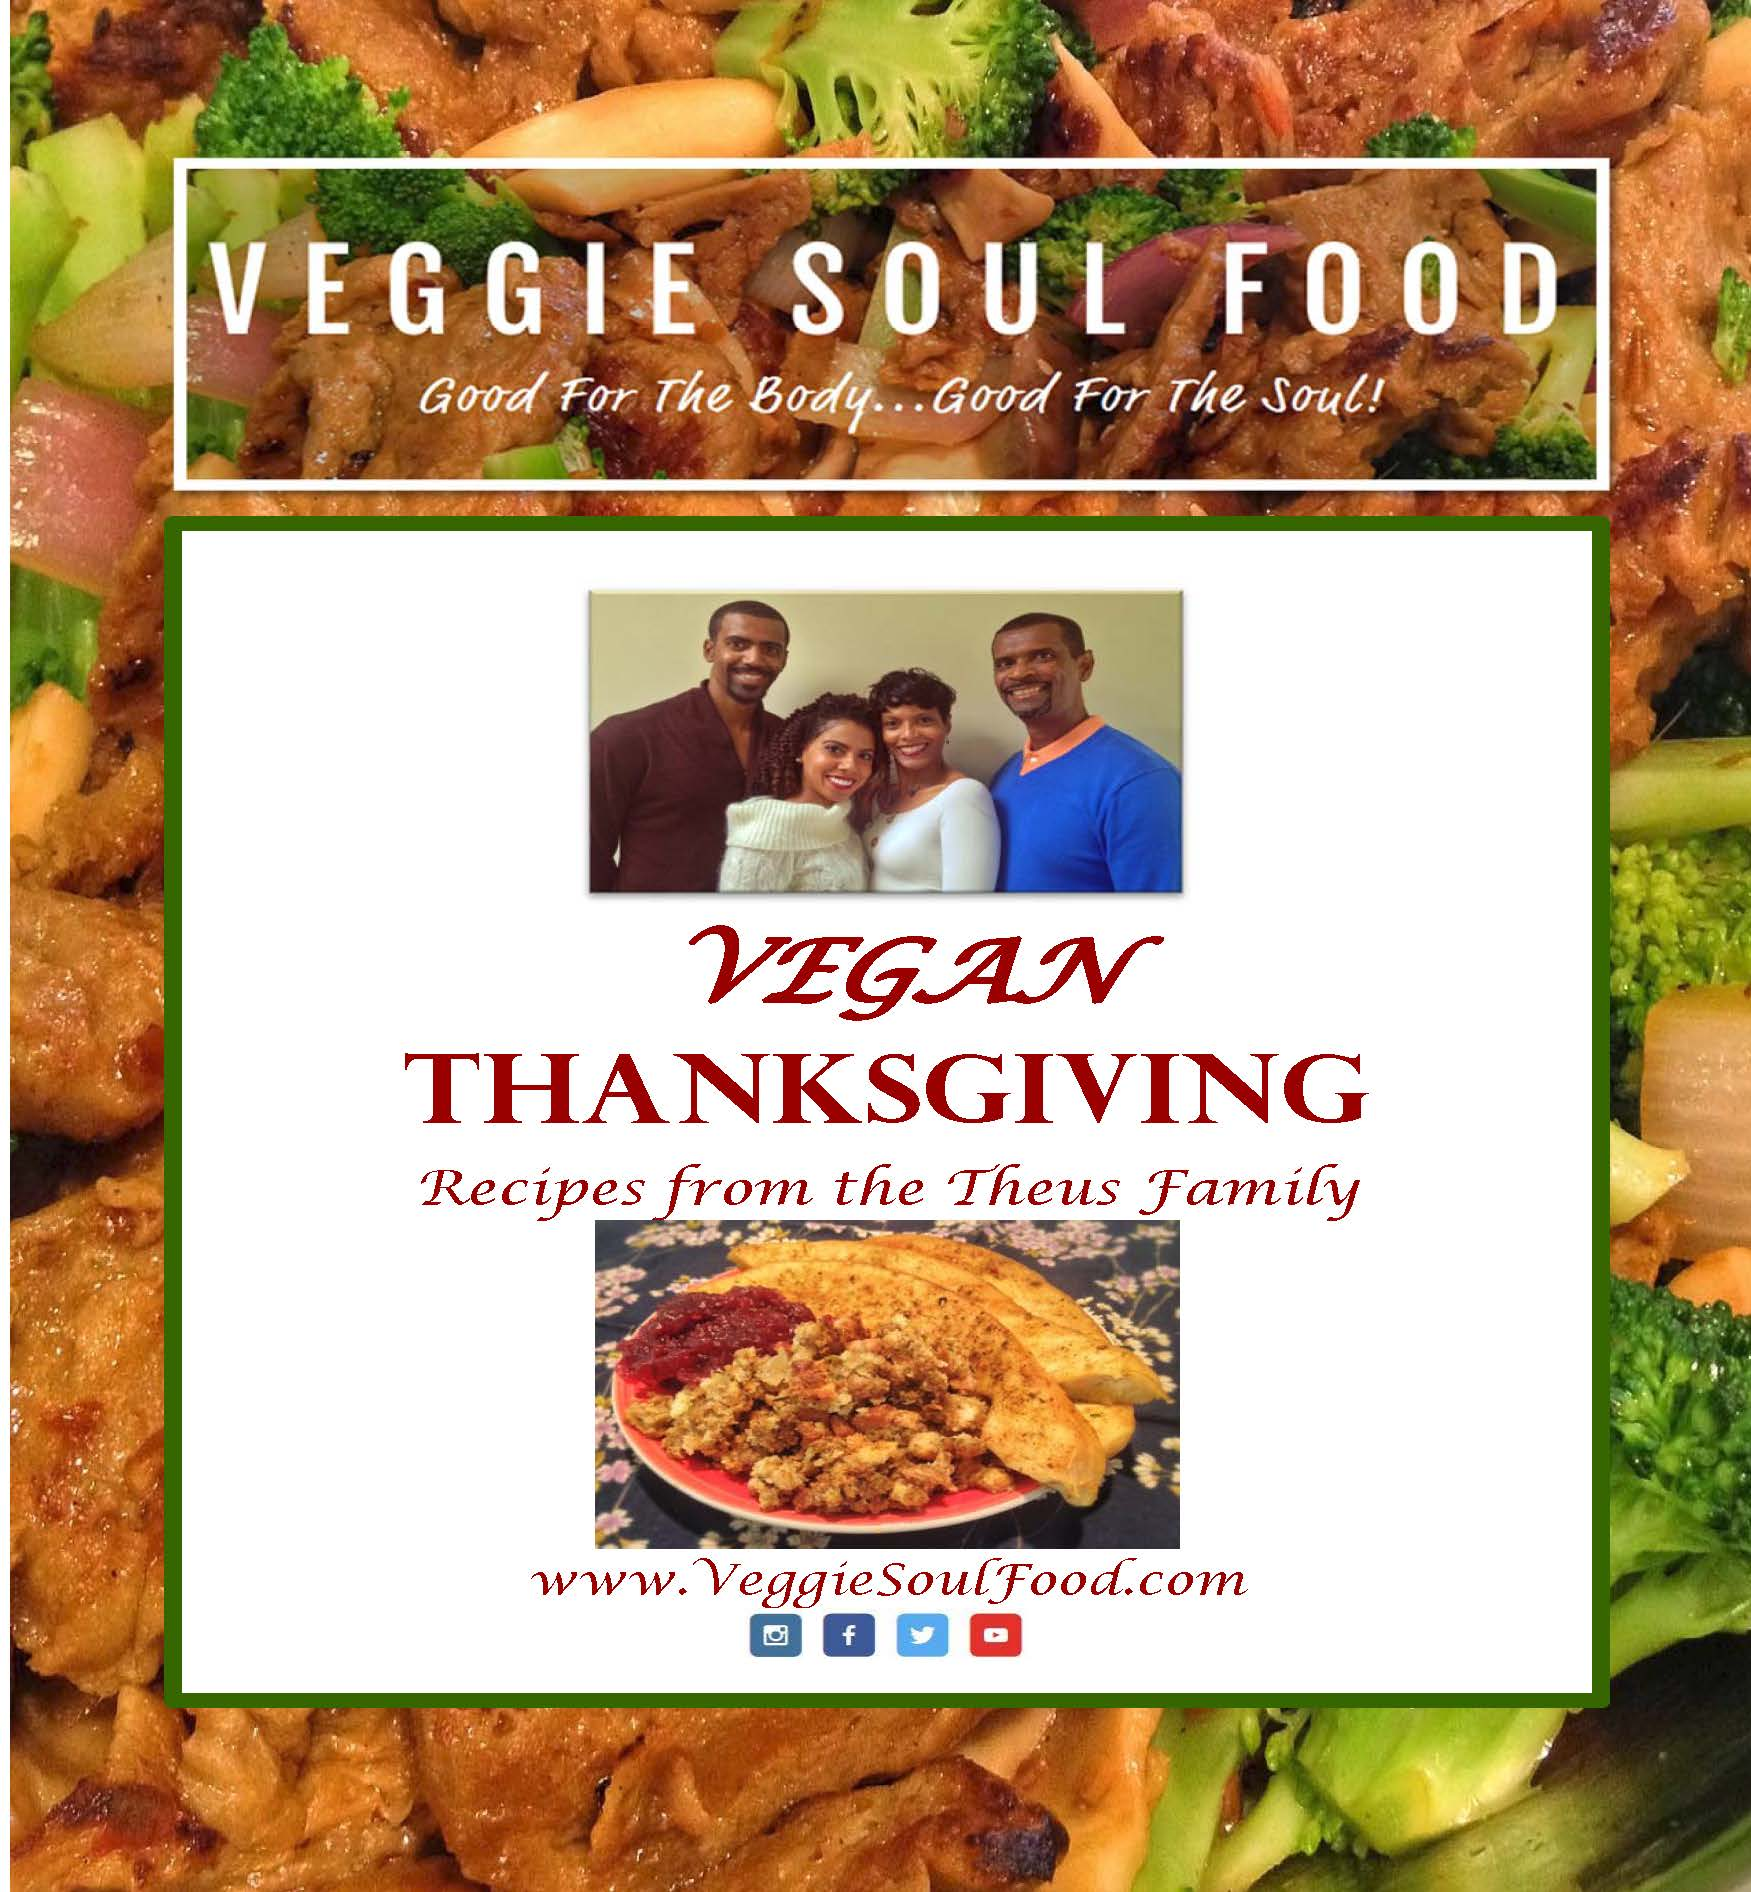 Click the image to download the PDF for all the recipes.